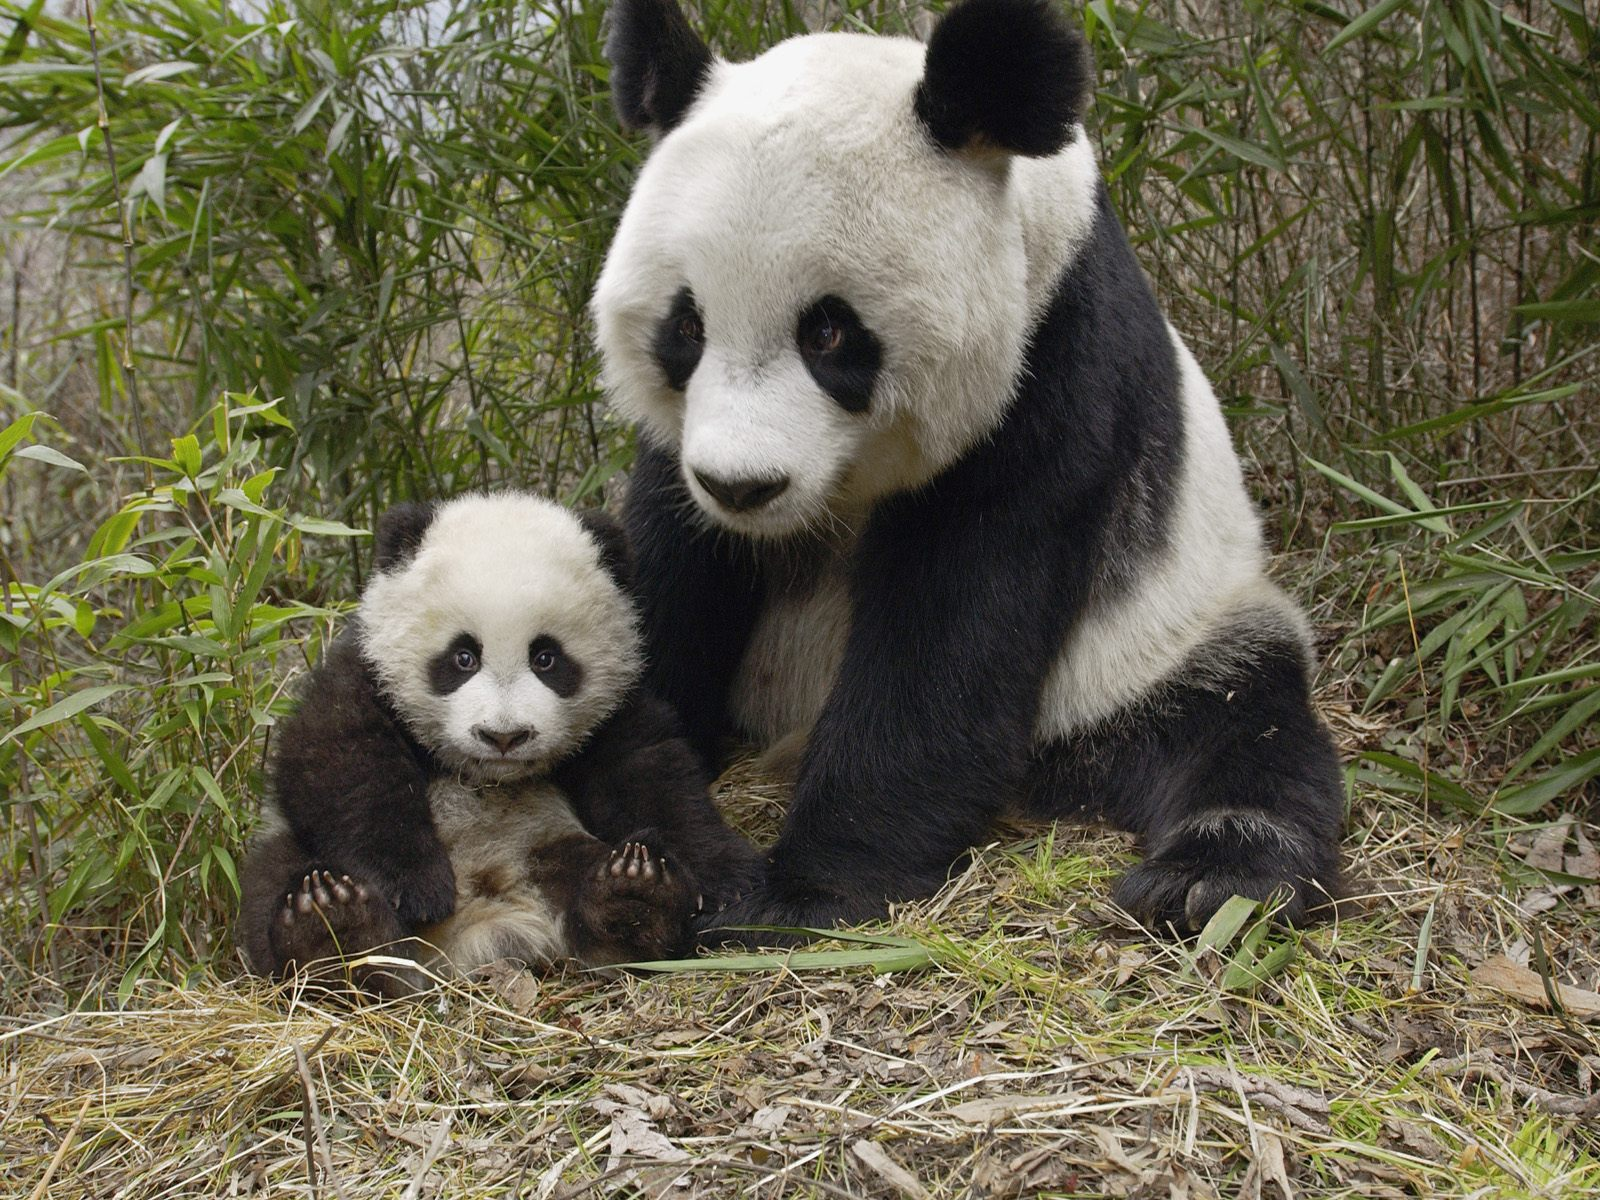 Giant-Panda-Mother-and-Cub-Molong-Nature-Reserve-China